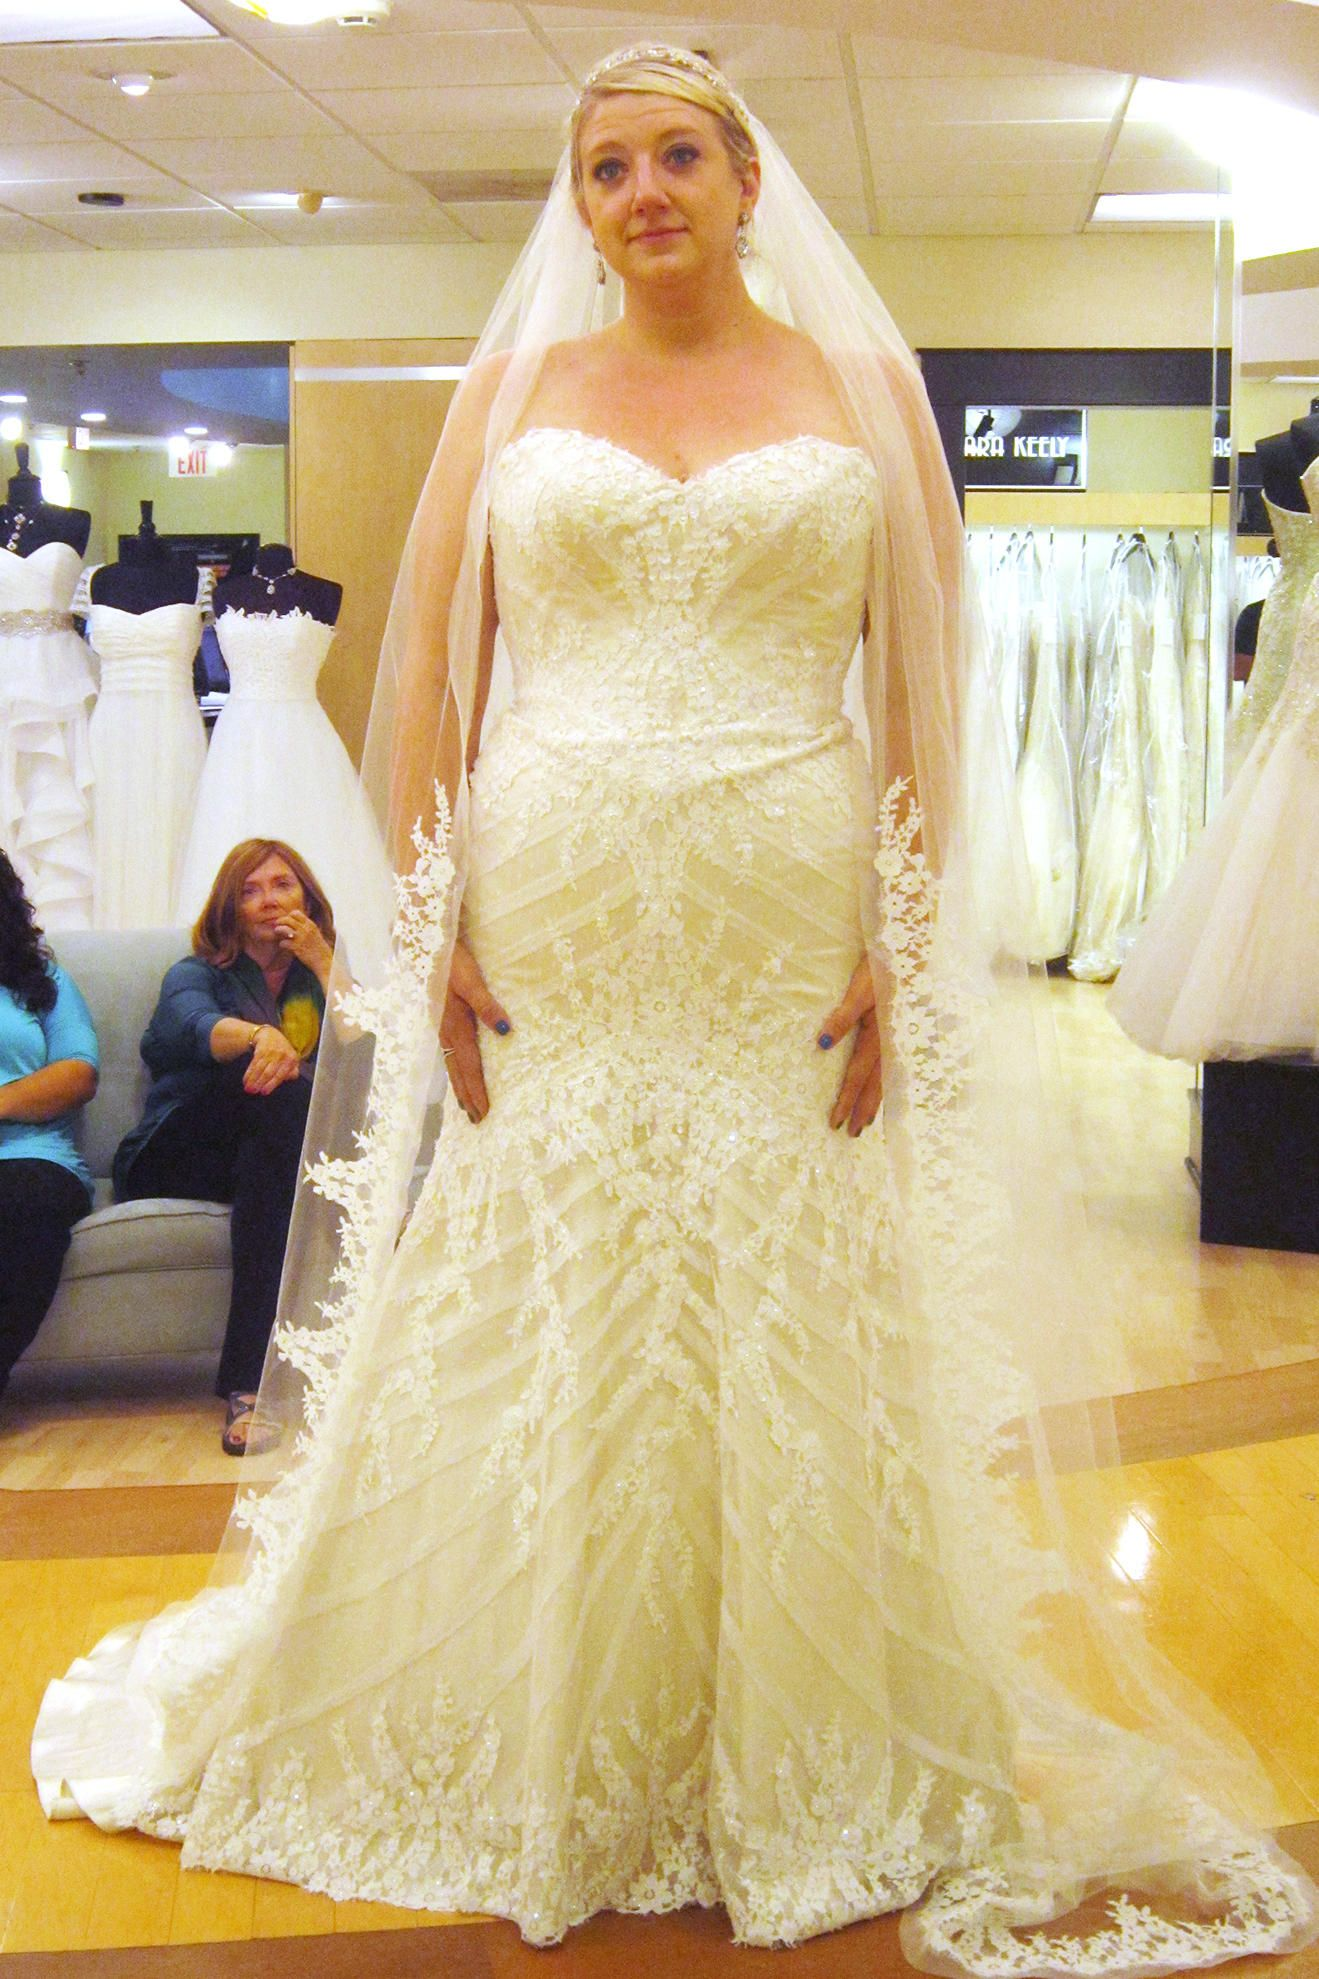 Matthew Christopher Sofia Dress I Just Saw This On Say Yes To The Atlanta Season 8 Episode 12 And Fell In Love With It: Matthew Christopher Sofia Wedding Dress At Websimilar.org